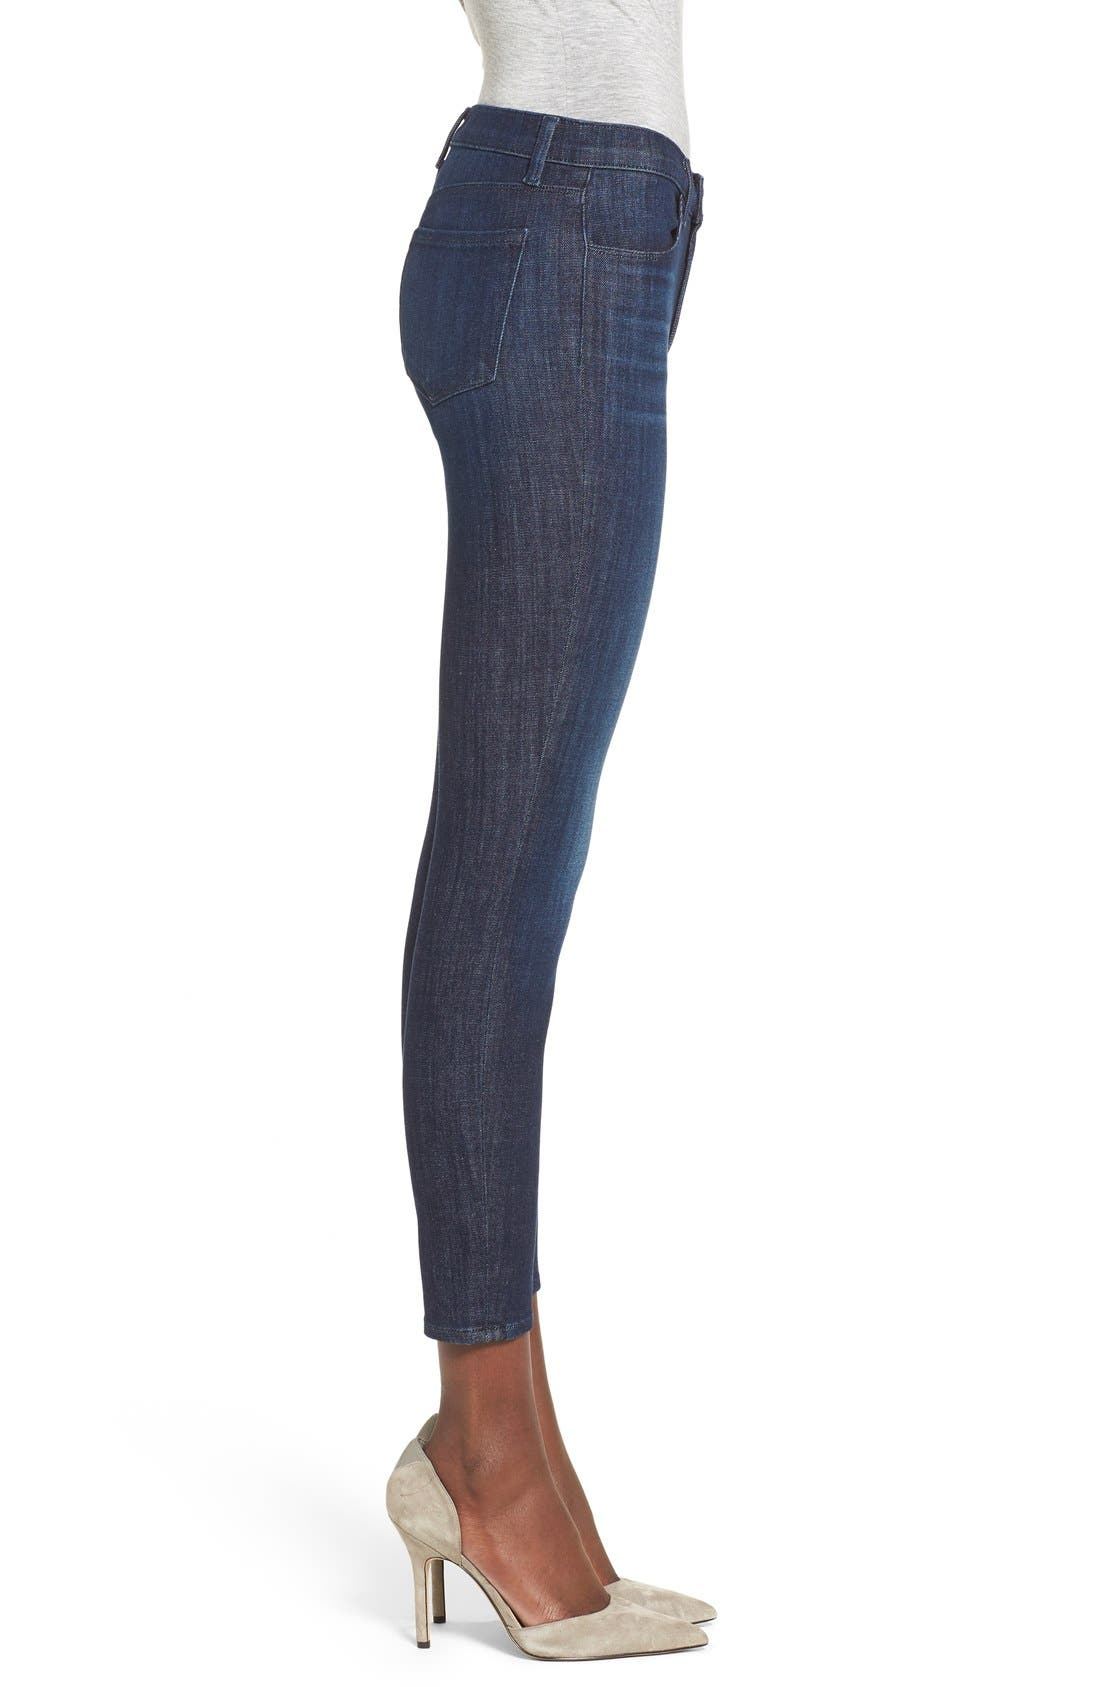 J BRAND, Alana Ripped High Rise Crop Skinny Jeans, Alternate thumbnail 2, color, 408